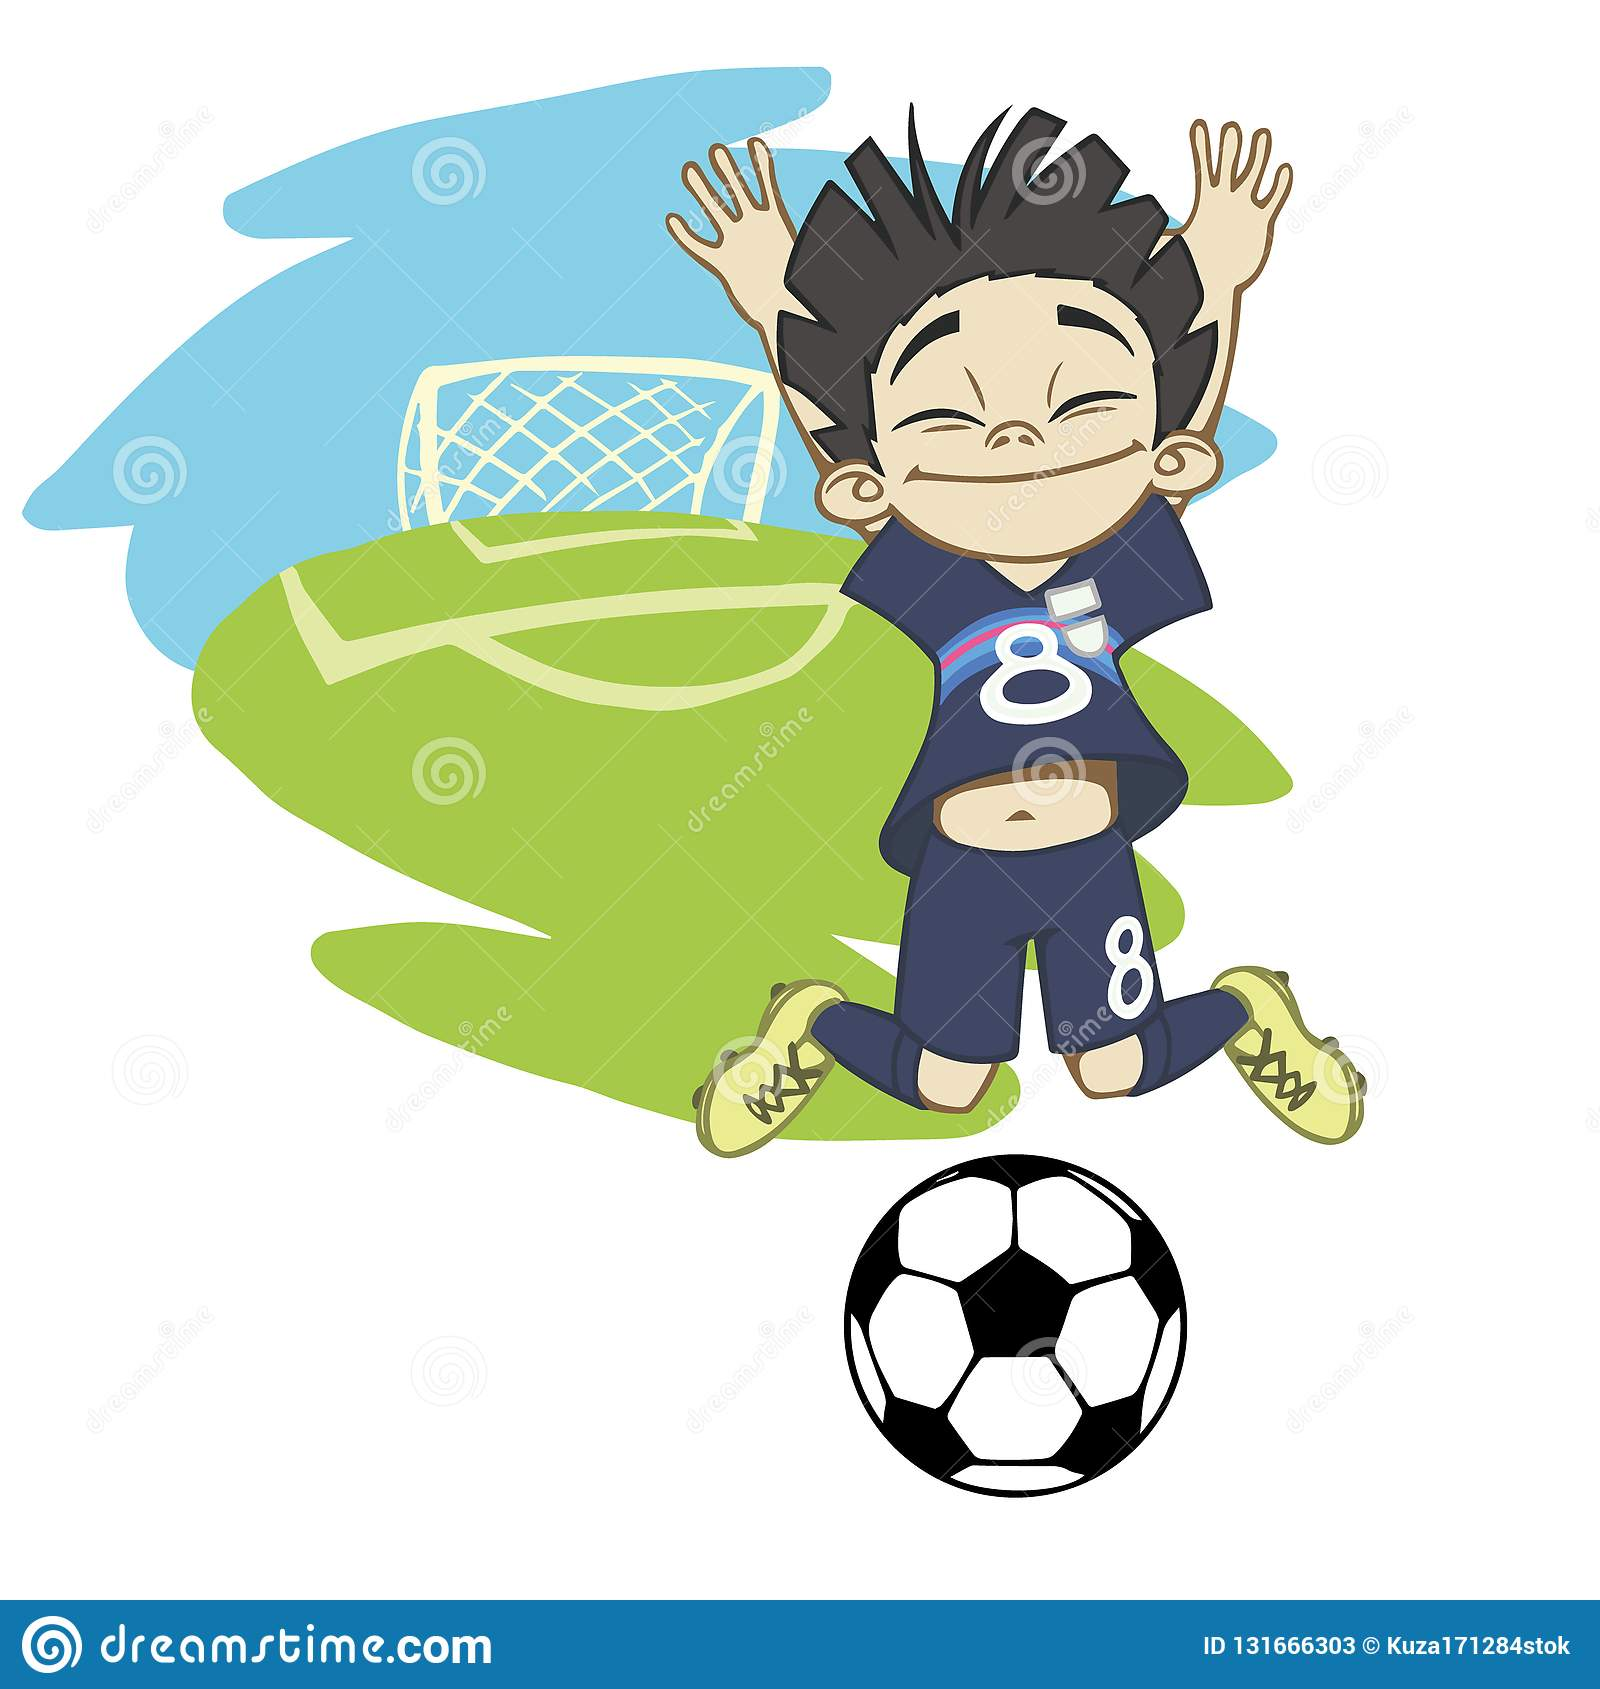 A Cartoon Soccer Player Is Playing Ball In A Stadium In